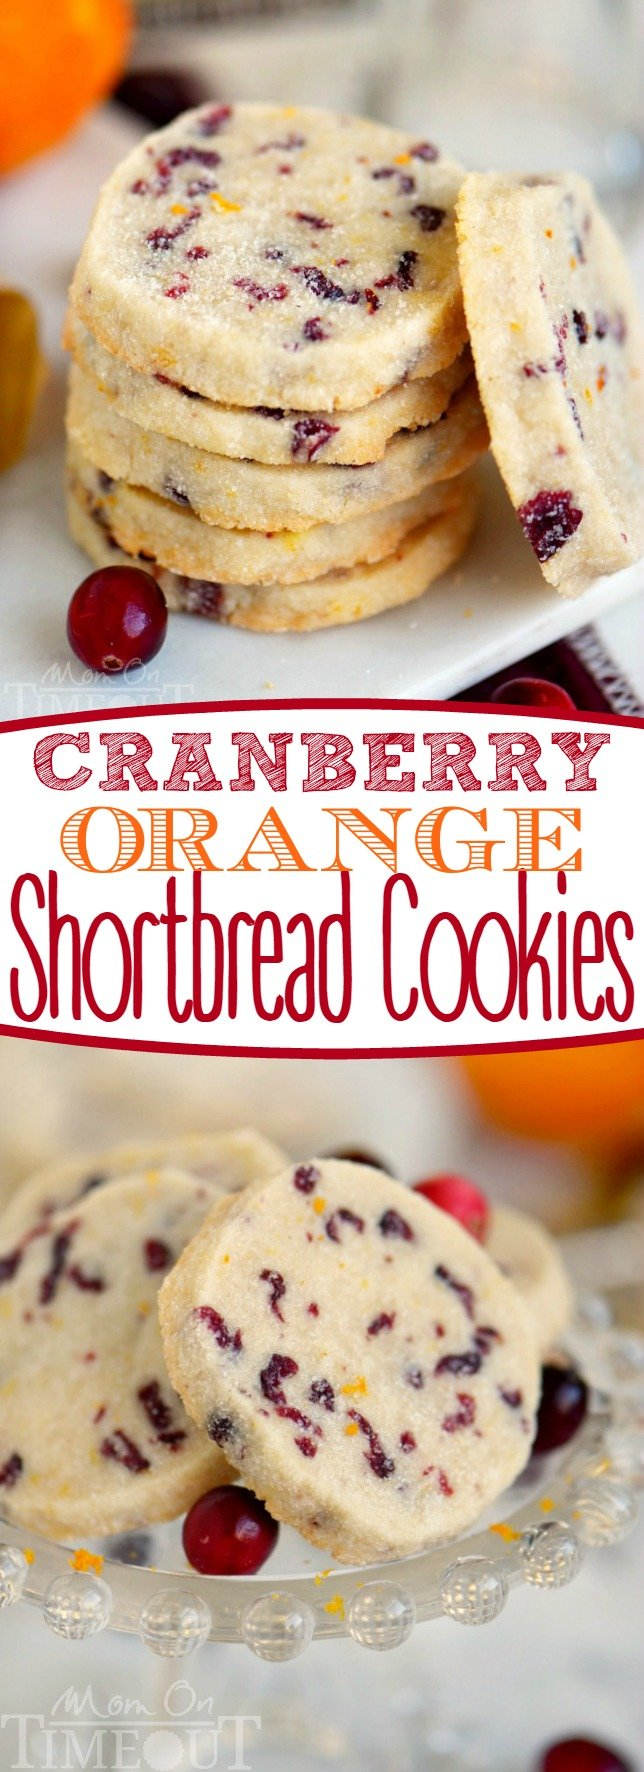 cranberry-orange-shortbread-cookies-collage